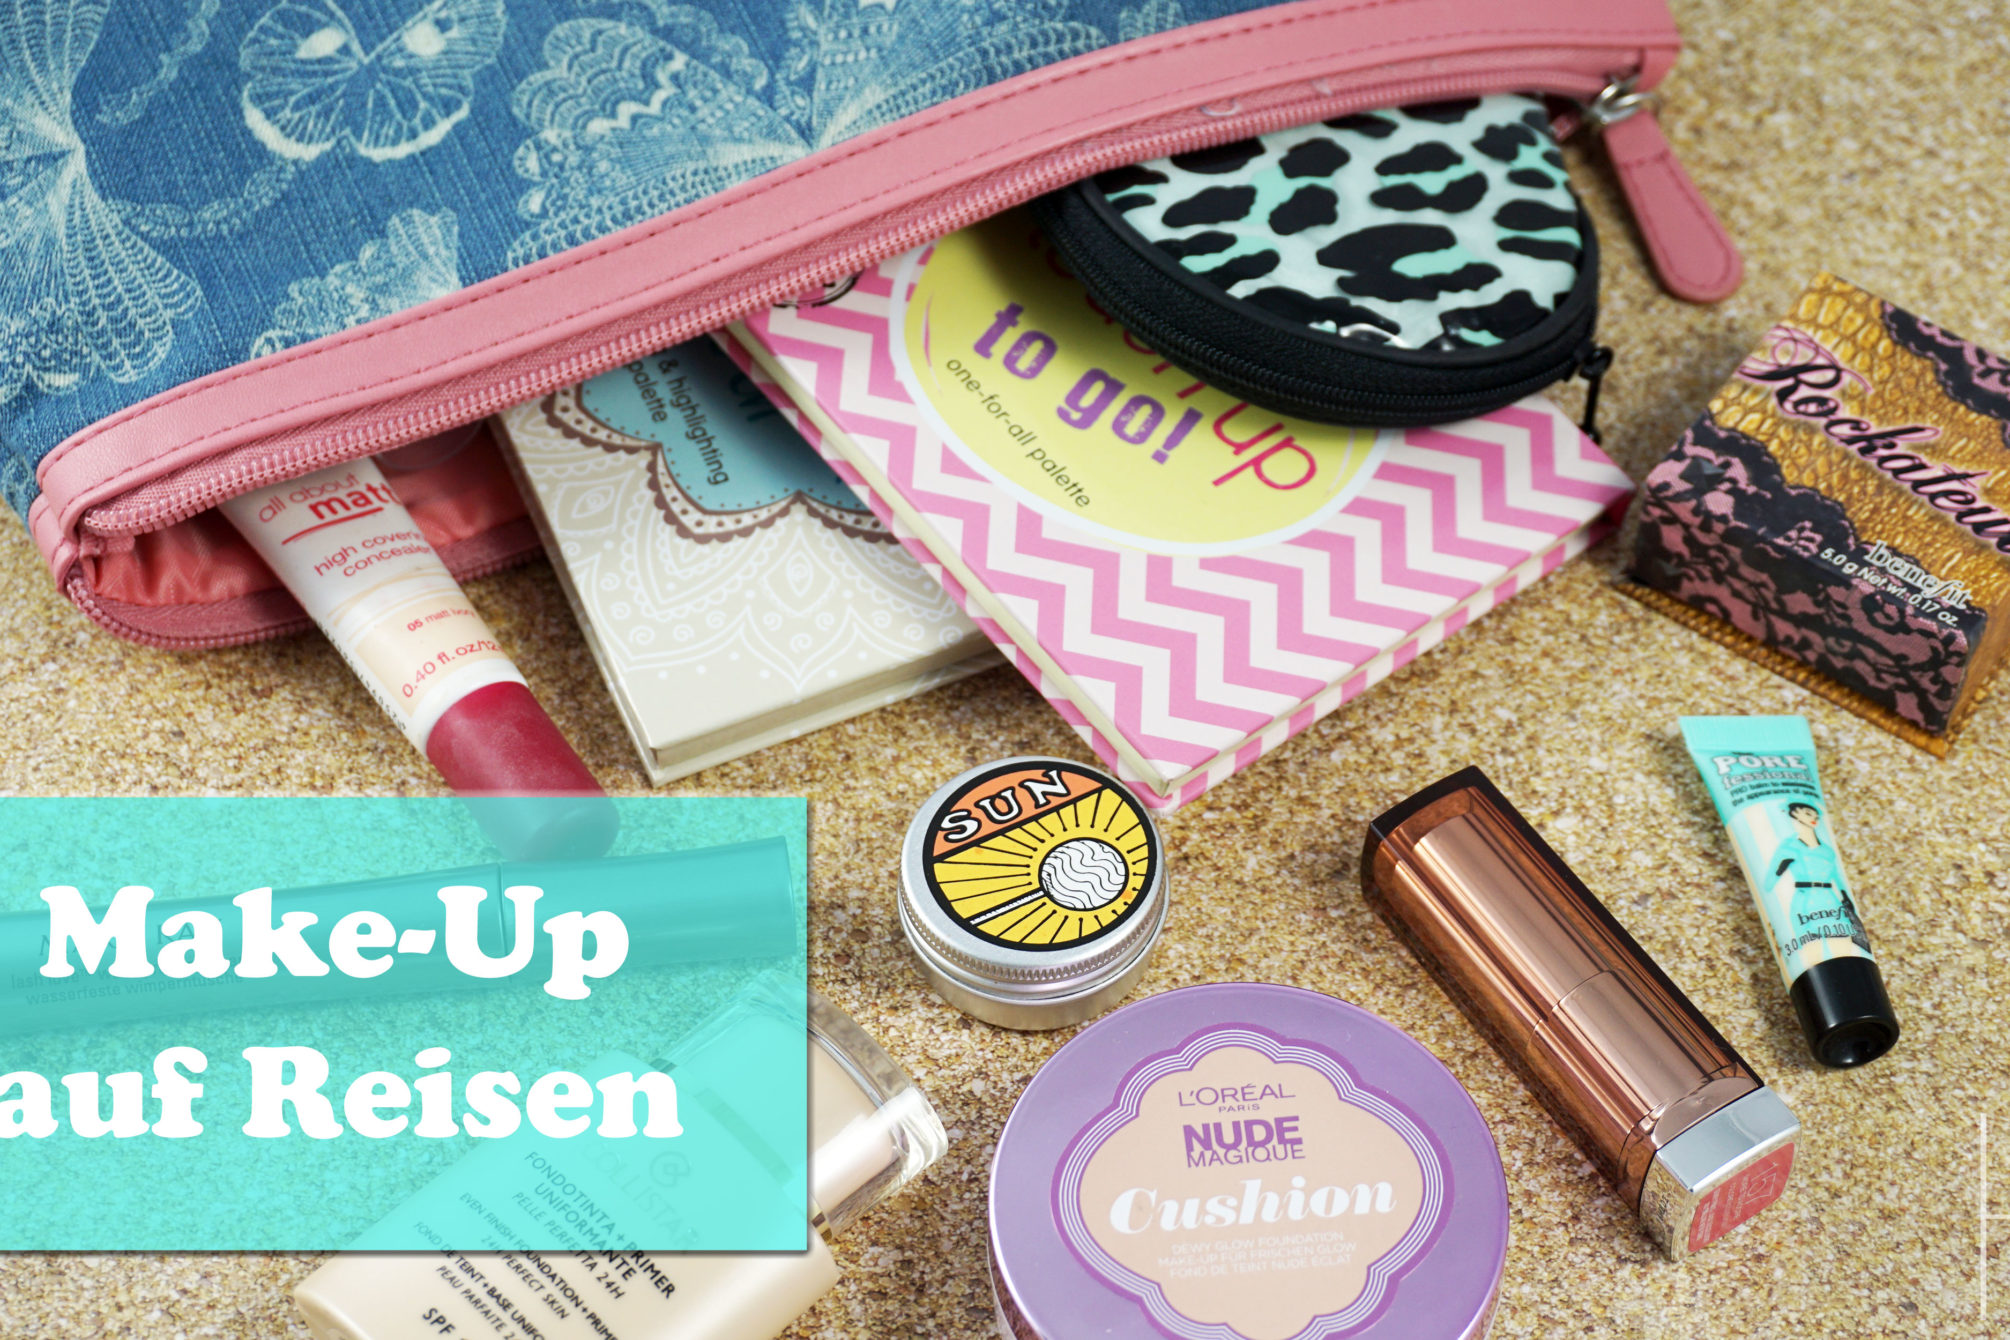 Make-Up auf Reisen